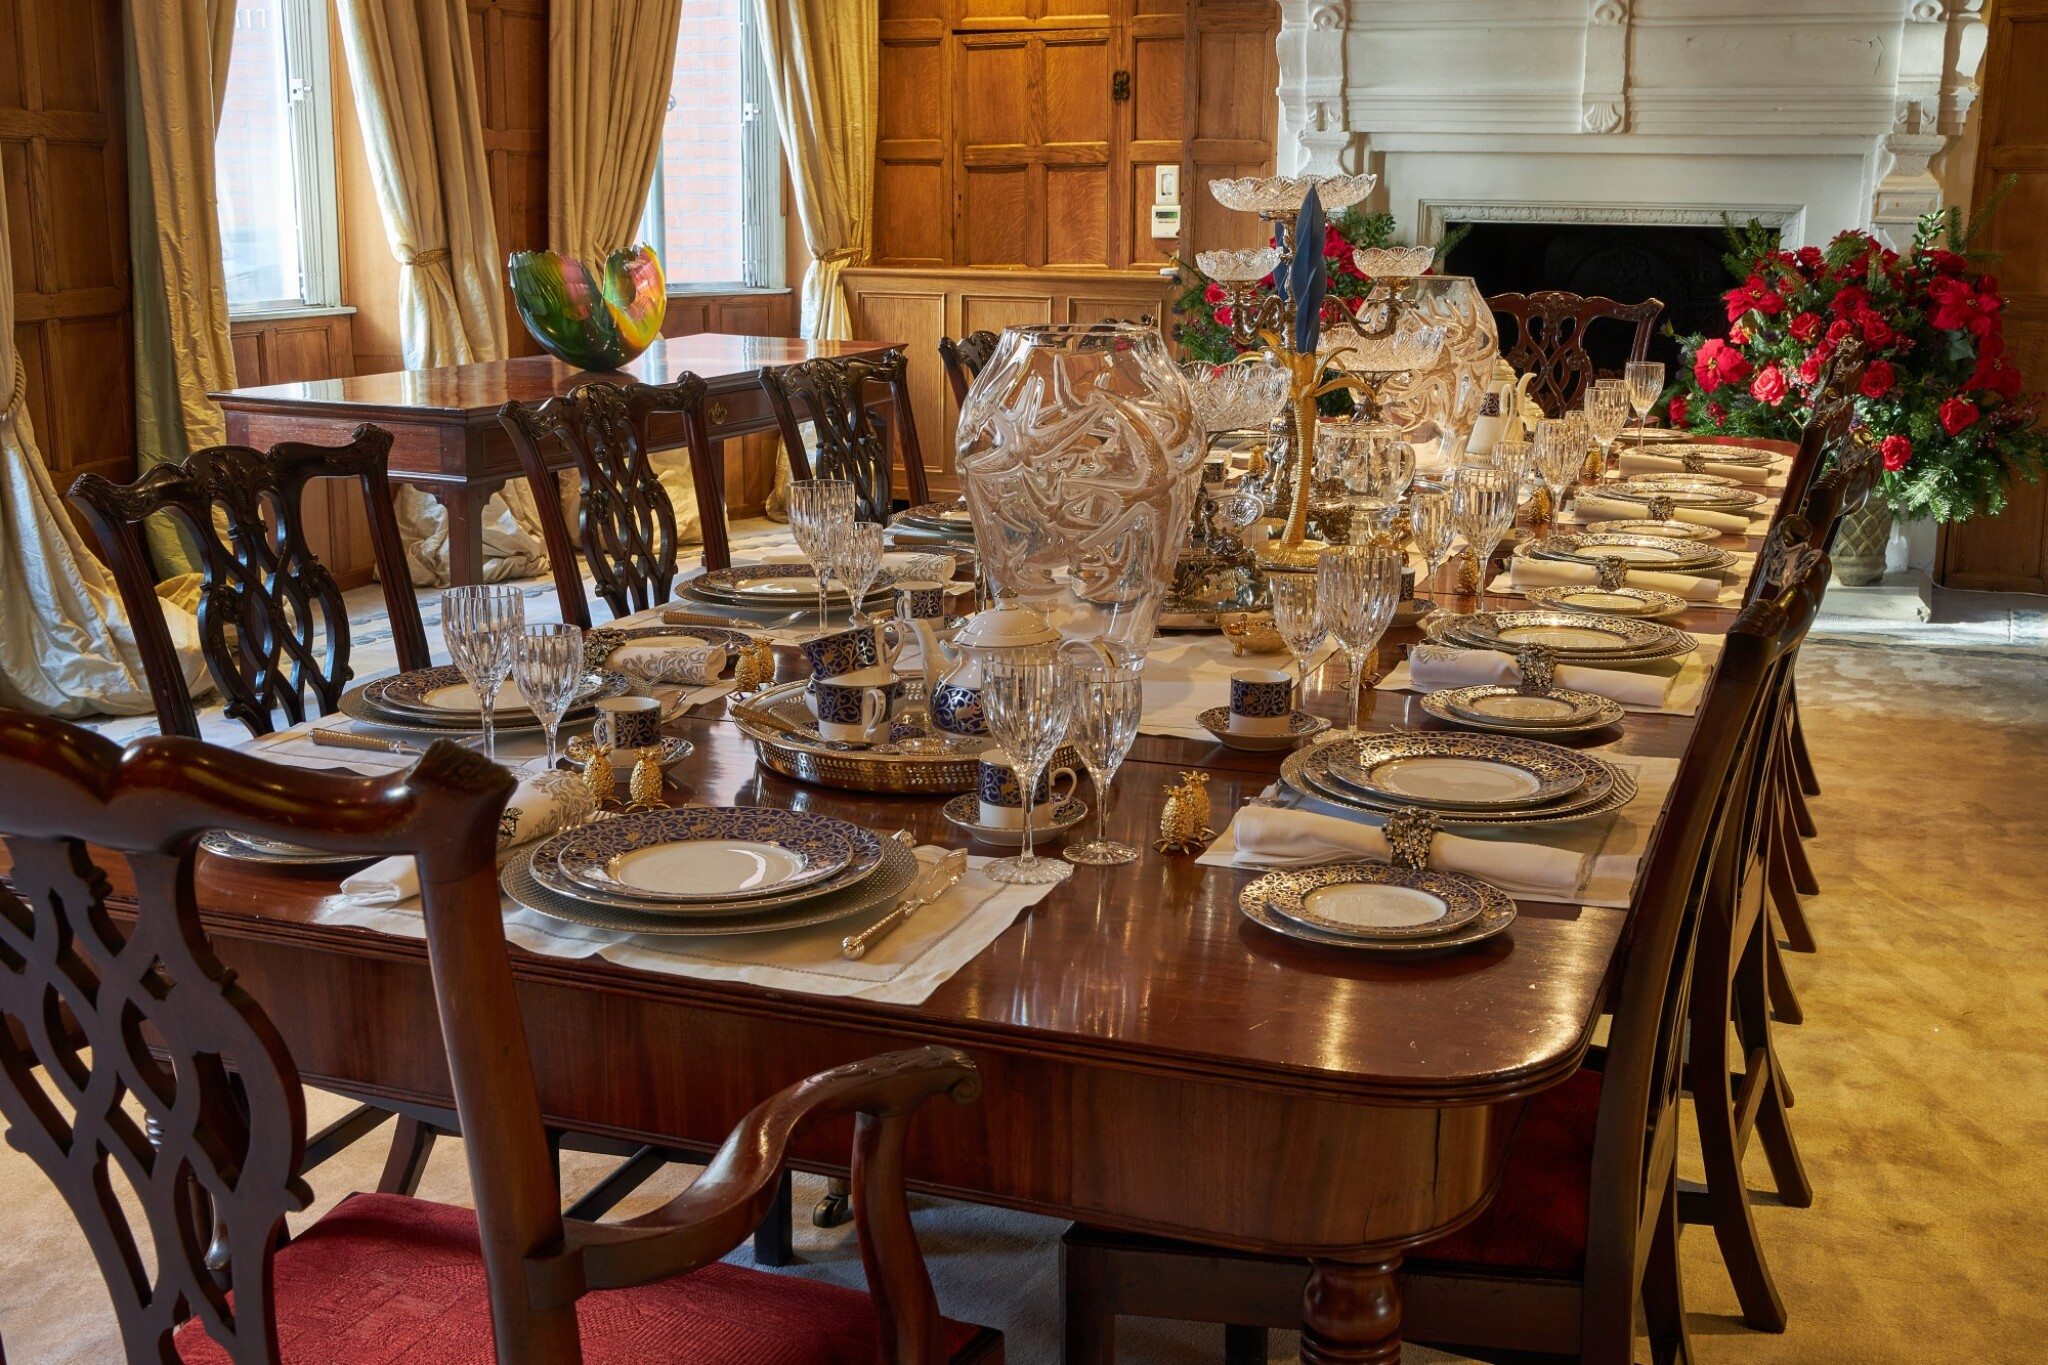 View full screen - View 1 of Lot 44. An early 19th C Mahogany Dining Table by Gillow & Co. with a set of 12 carved Dining Chairs in the Chippendale Style, and a Thomas Goode 'Stewart' bone china part dinner and dessert service, and an original antique glass from the Thomas Goode archive, various dates.